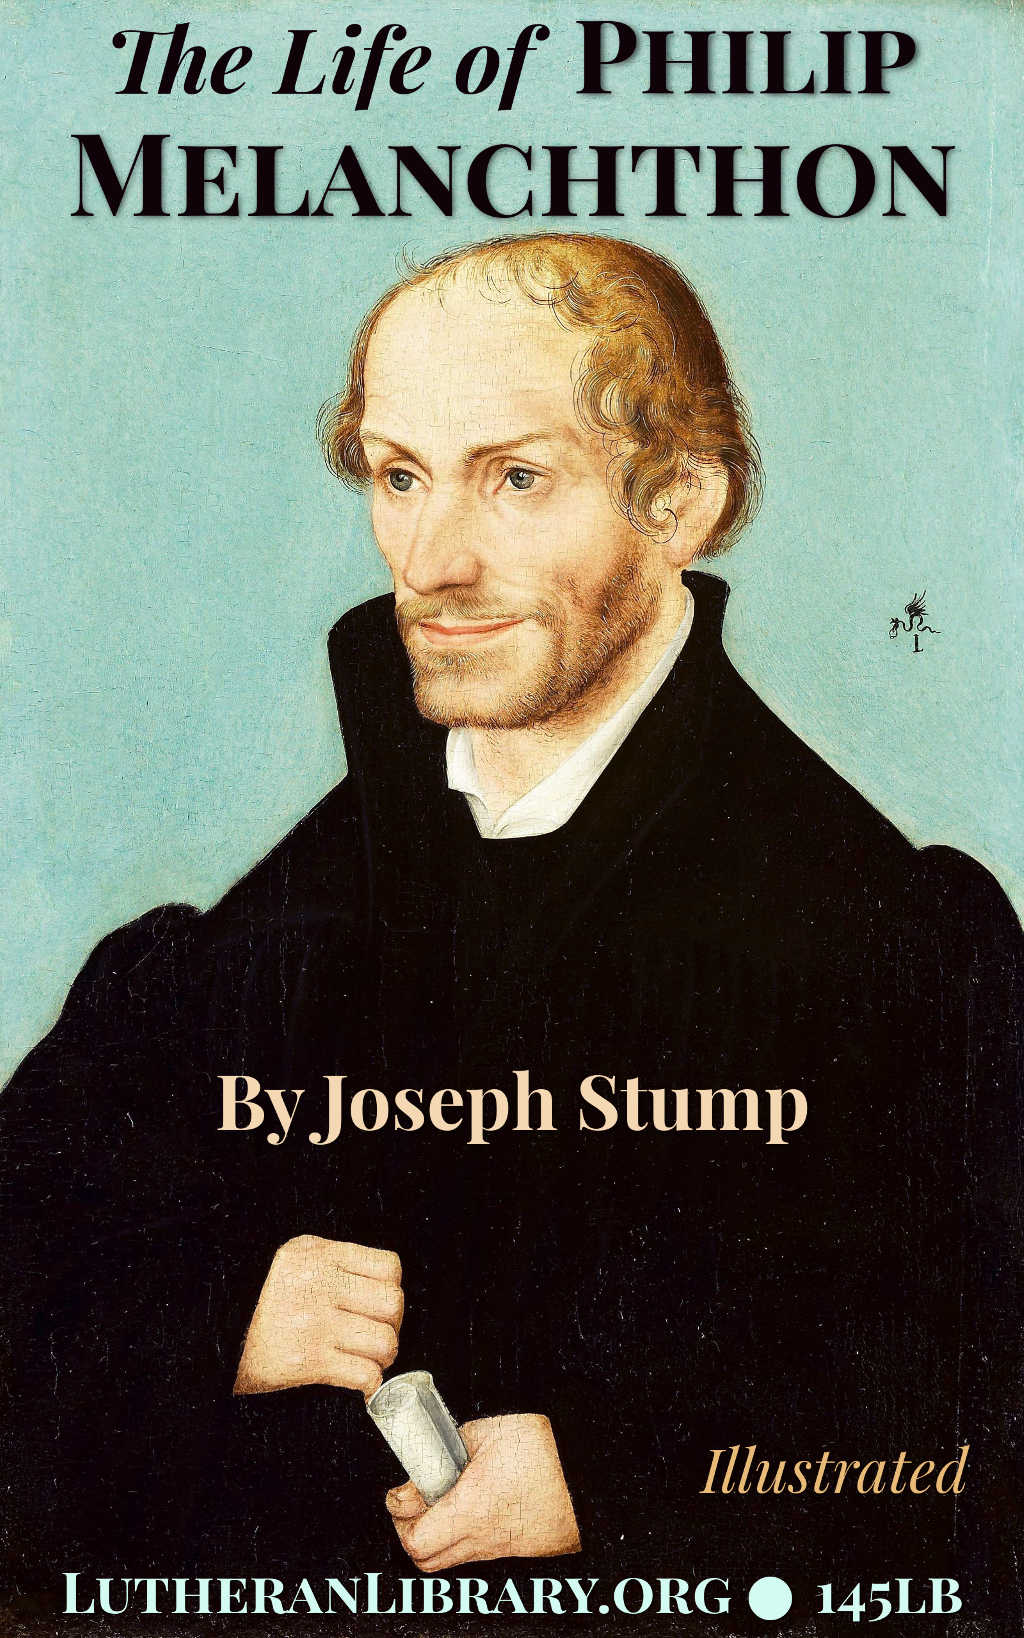 The Life of Philip Melanchthon by Joseph Stump